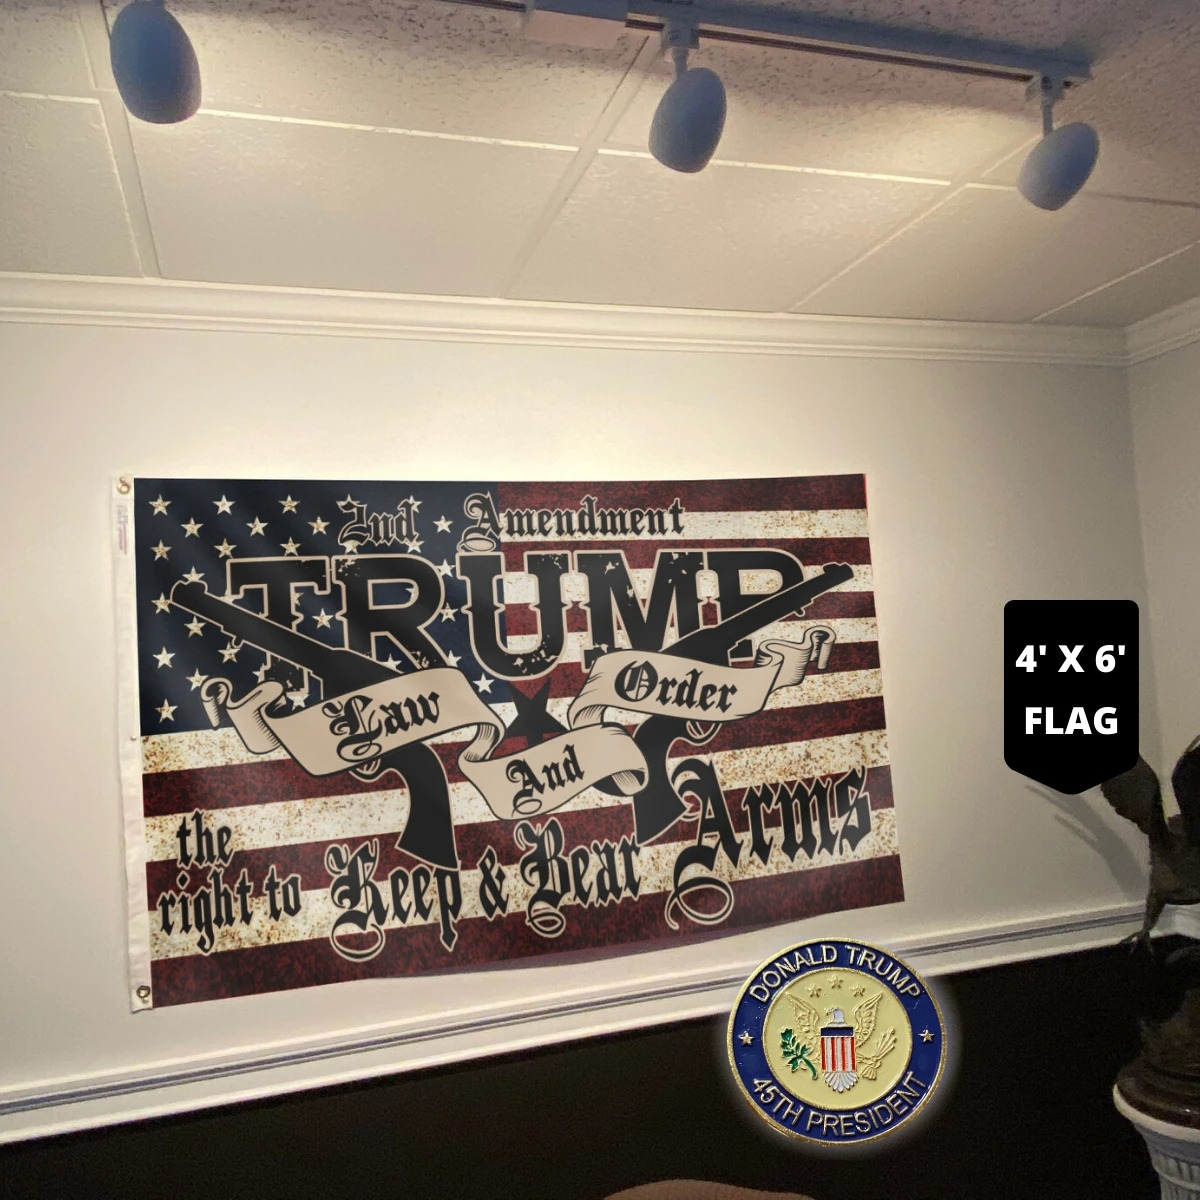 2nd amendment Trump law and order the right keep and bear arms flag 7